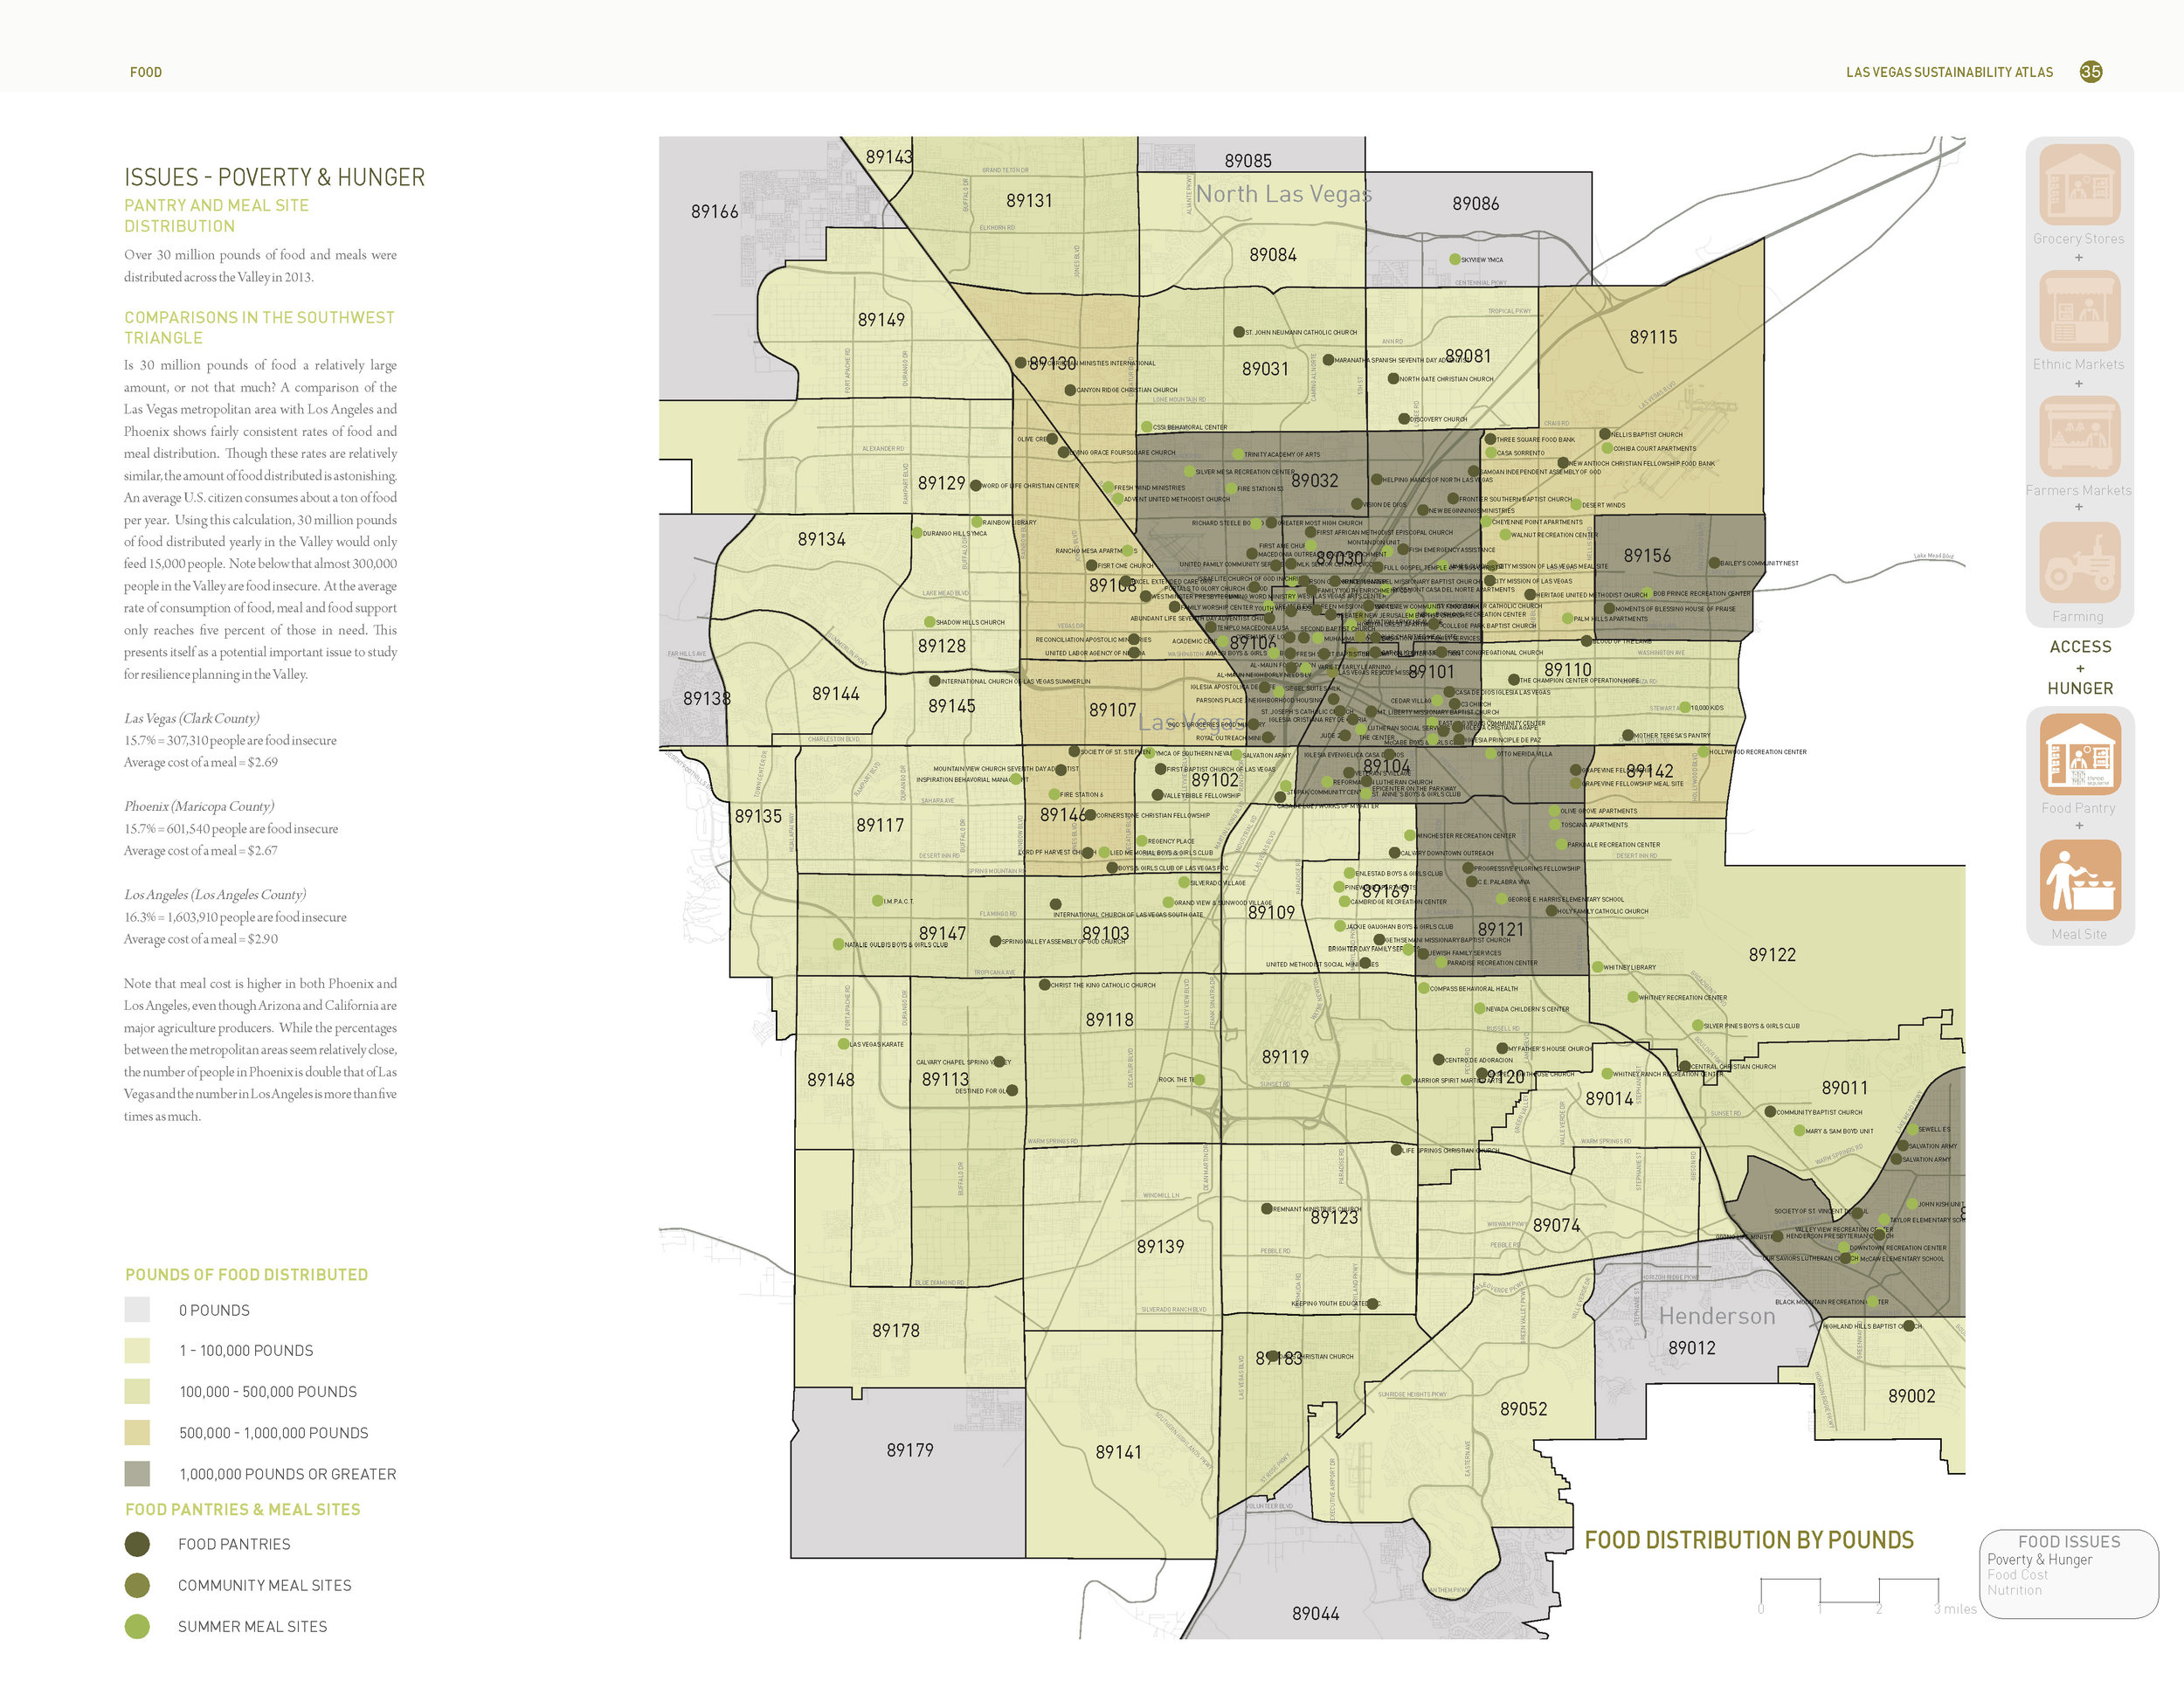 How much food moves through this outreach, and how does it compare to other cities in the region?